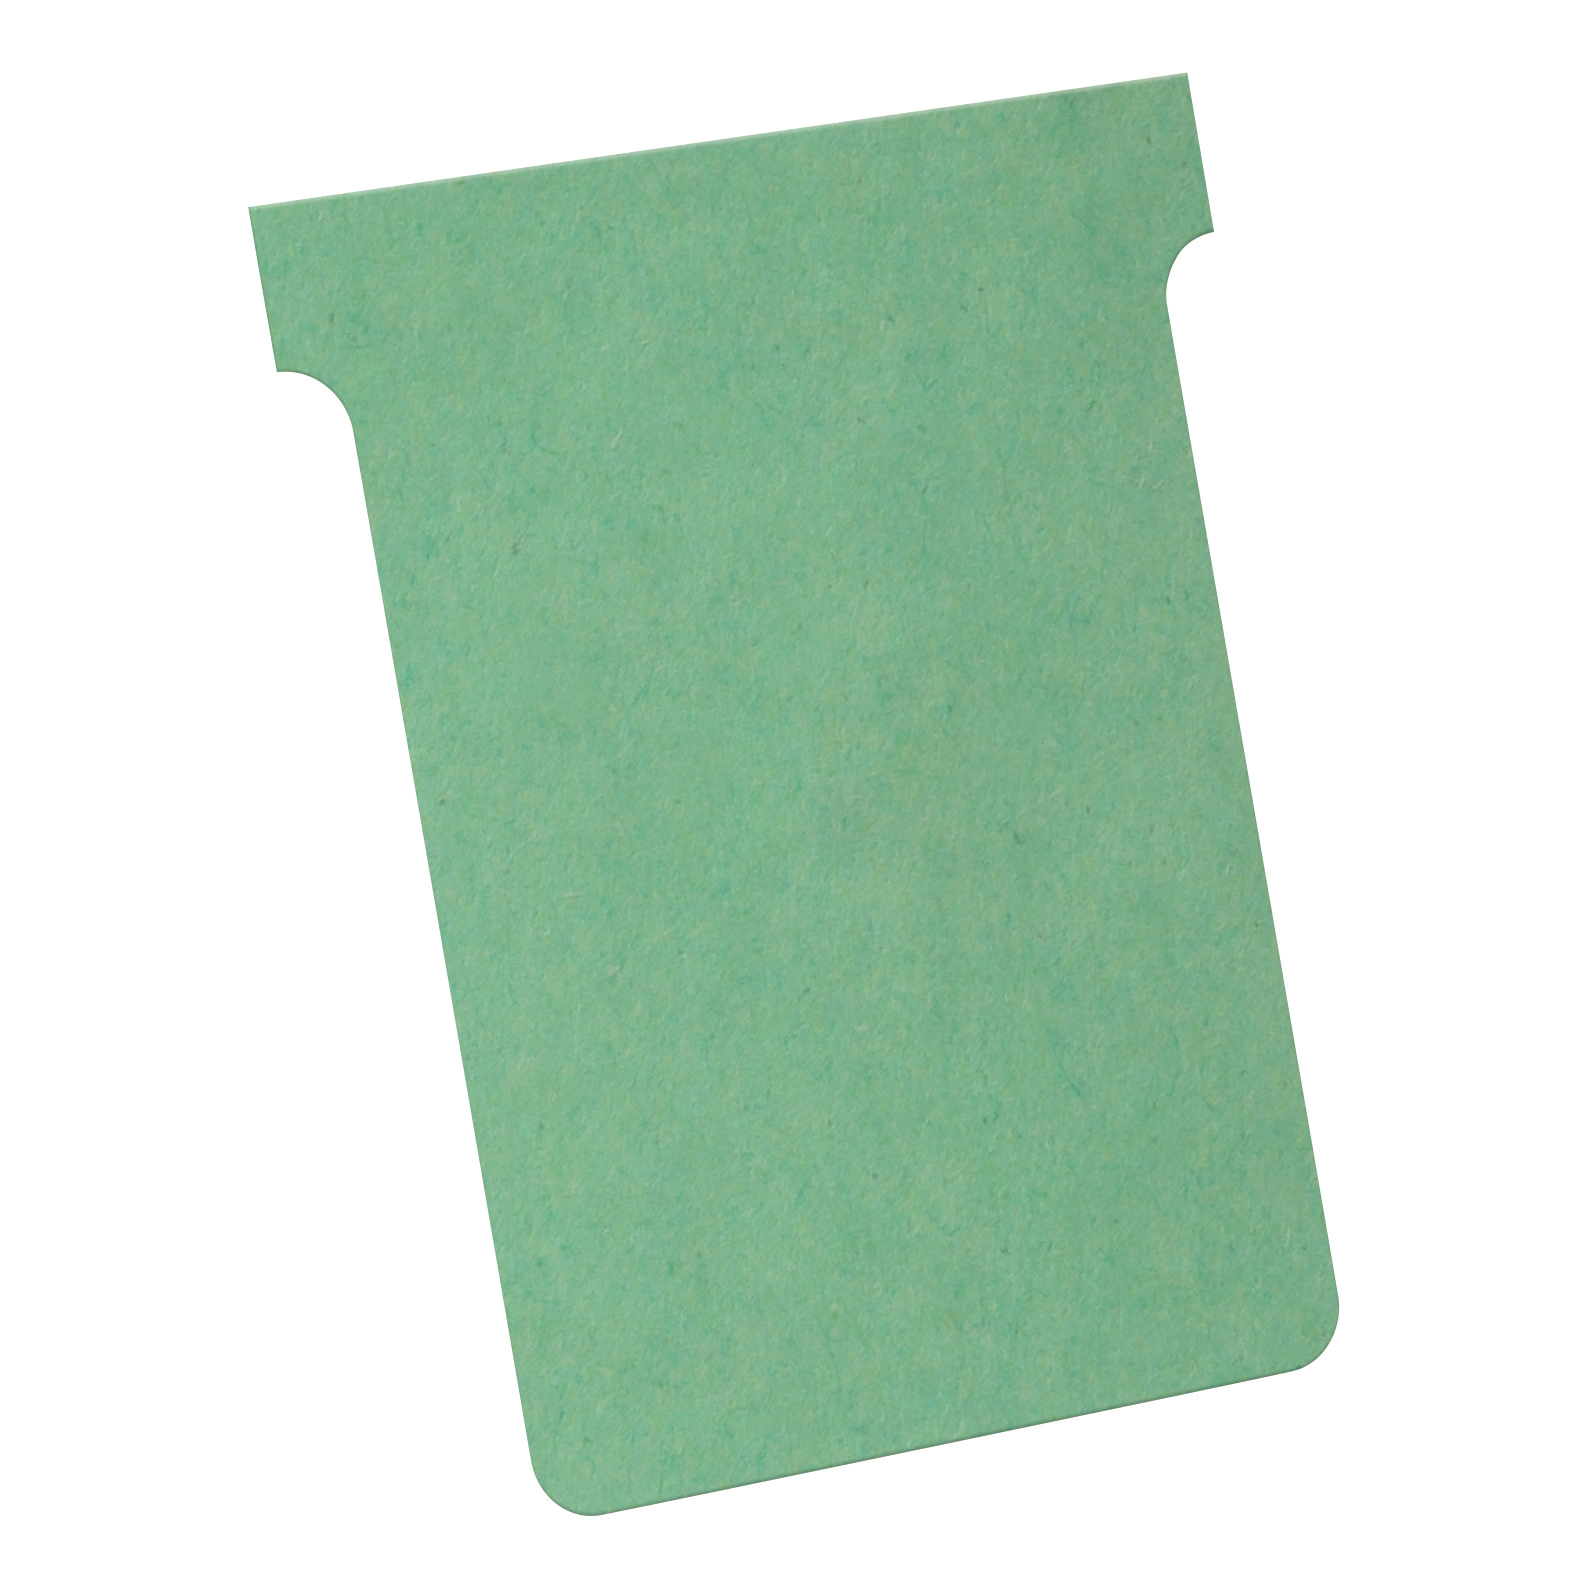 Nobo T-Cards 160gsm Tab Top 15mm W93x Bottom W80x Full H120mm Size 3 Green Ref 32938913 Pack 100